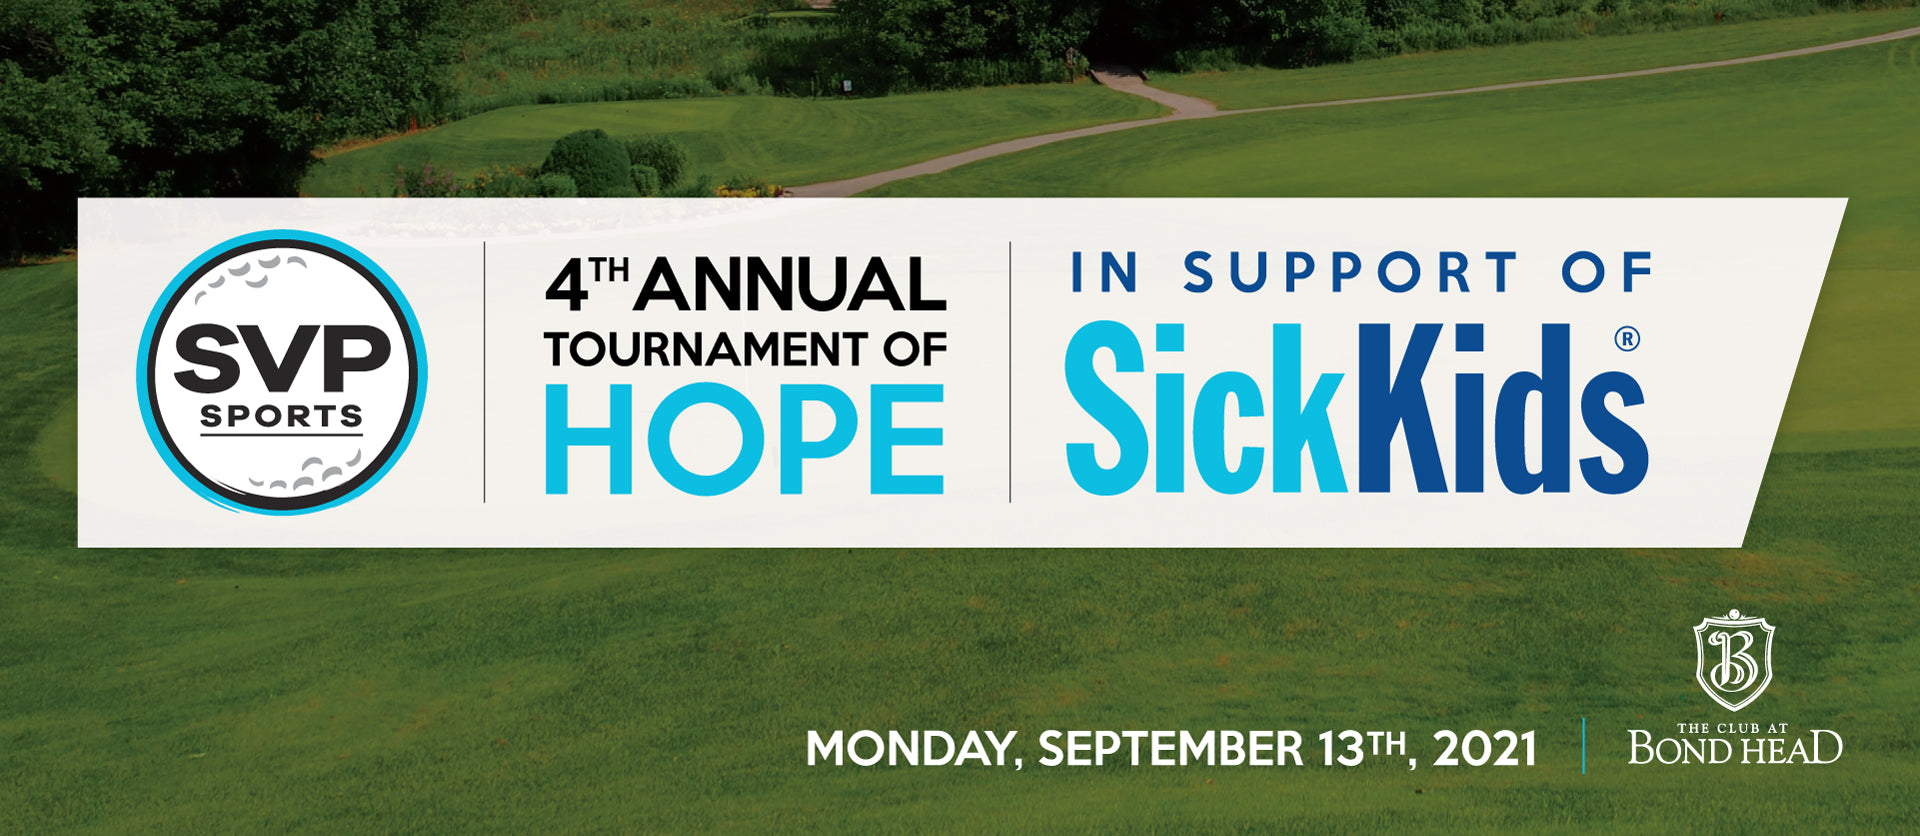 2021 SVP Sports Tournament of Hope in Support of SickKids